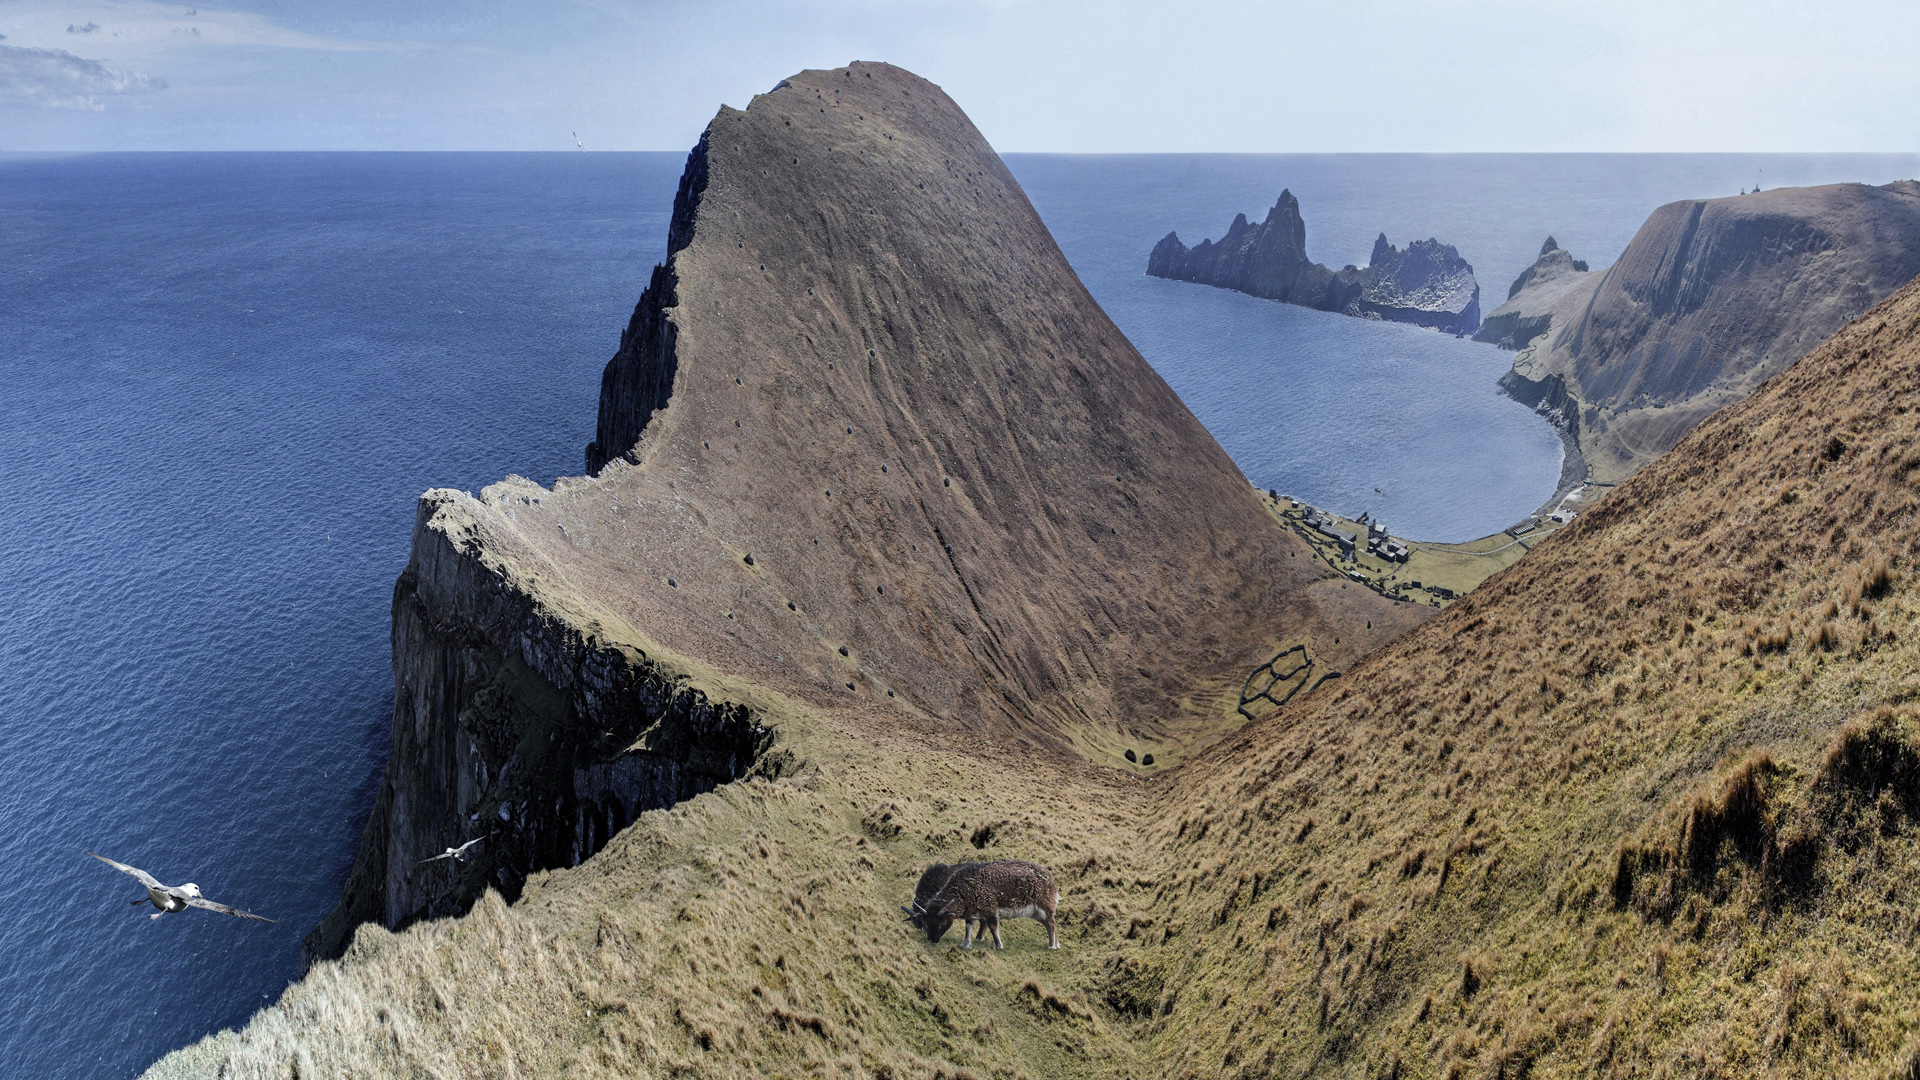 St kilda - edge of the world